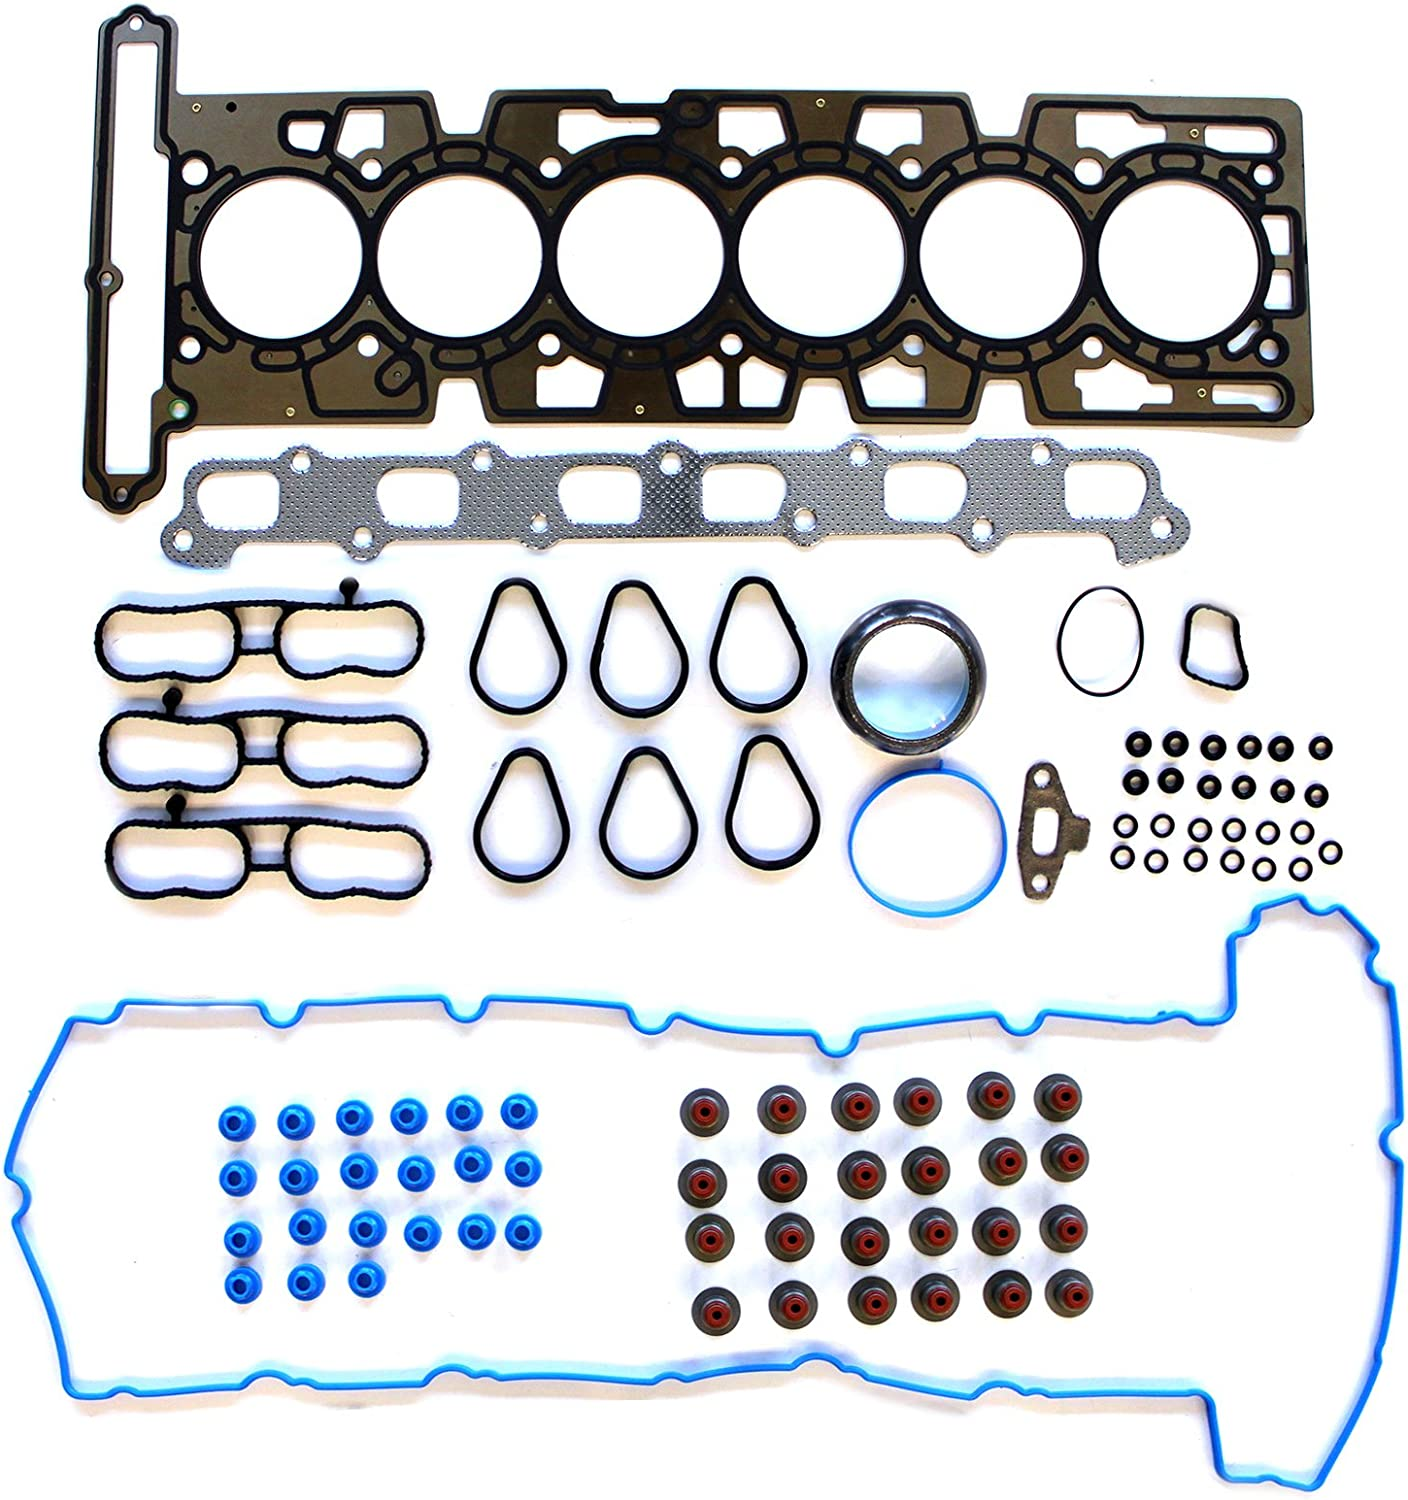 ECCPP Engine Replacement Head Gasket Ranking TOP14 Buick 2002-2005 Set for supreme fit